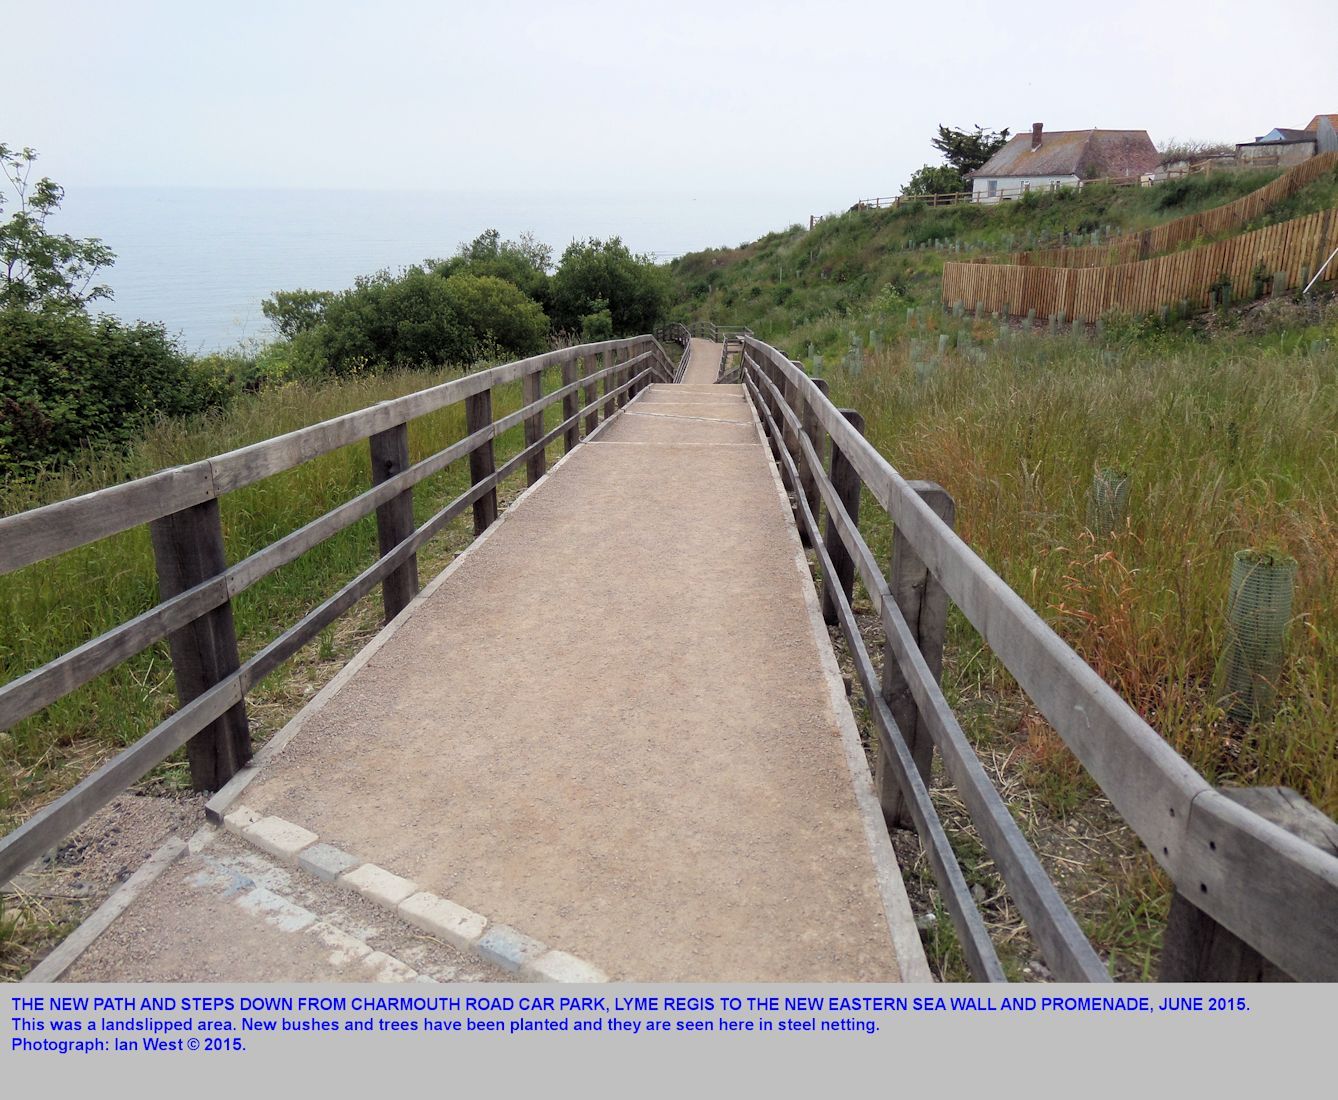 A new path down from the Charmouth Road car park, Lyme Regis, Dorset, to the new eastern sea wall and promenade, 12th June 2015